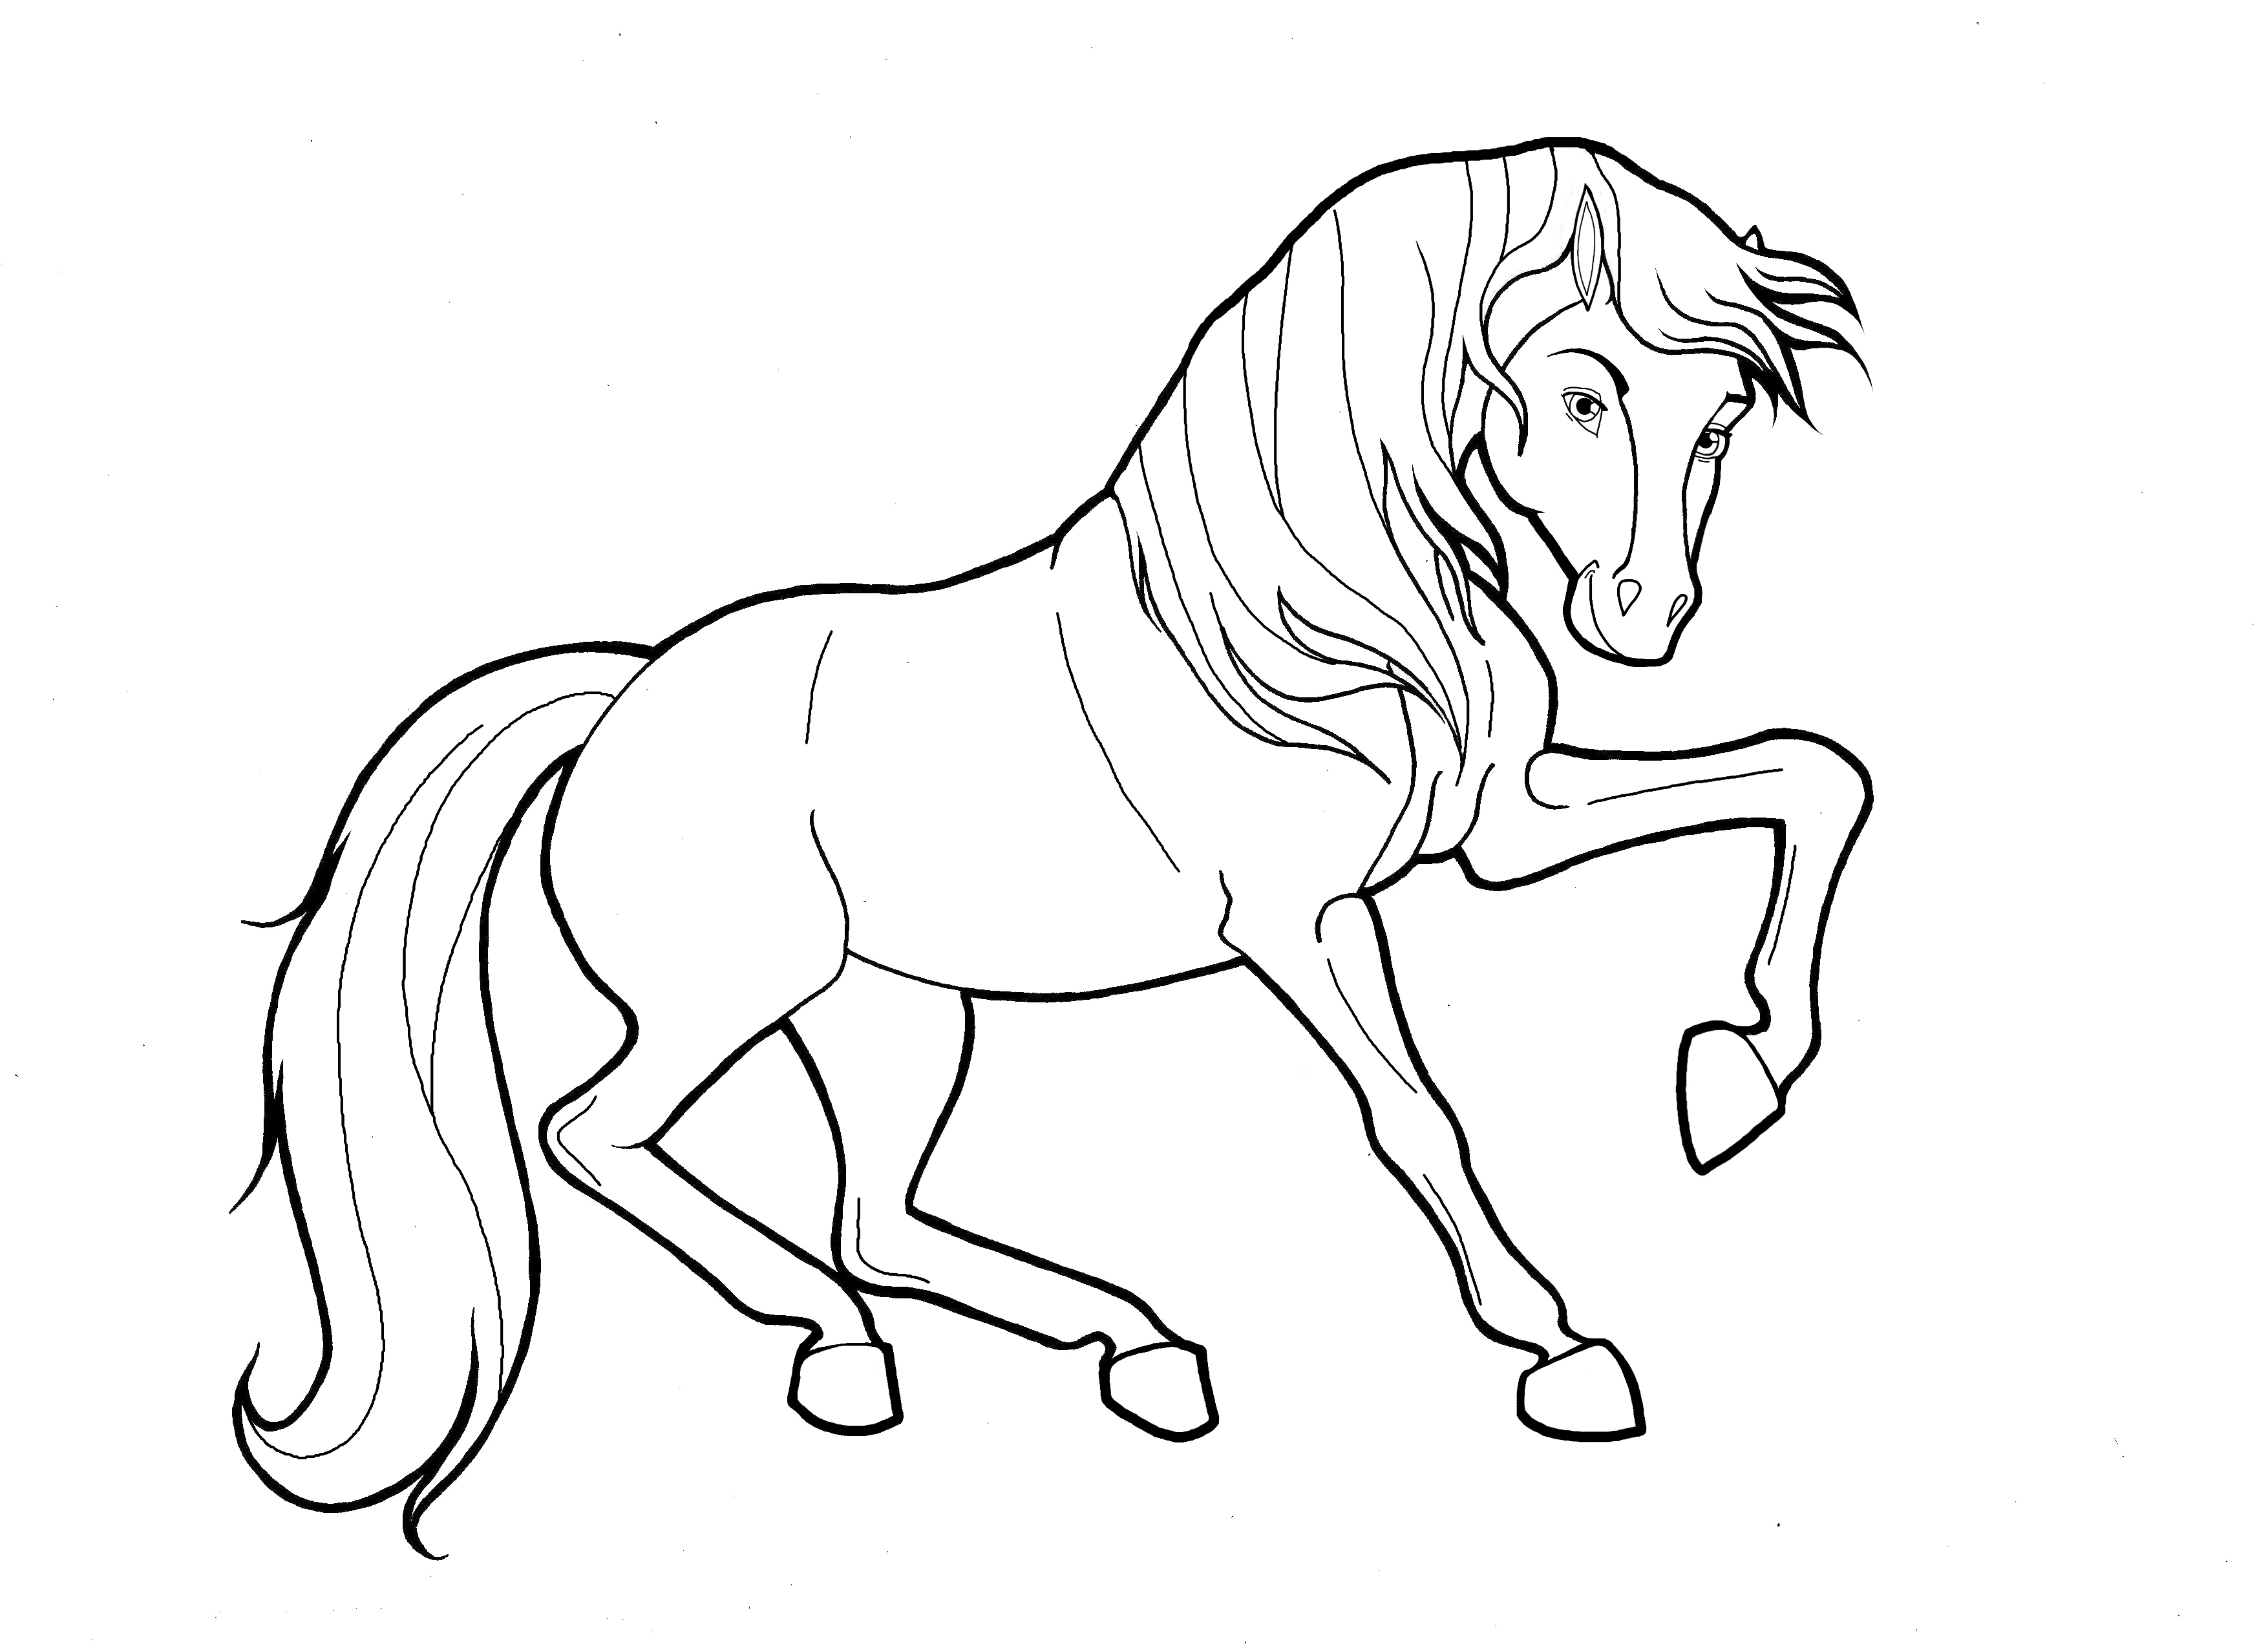 Coloring pages of horses to print